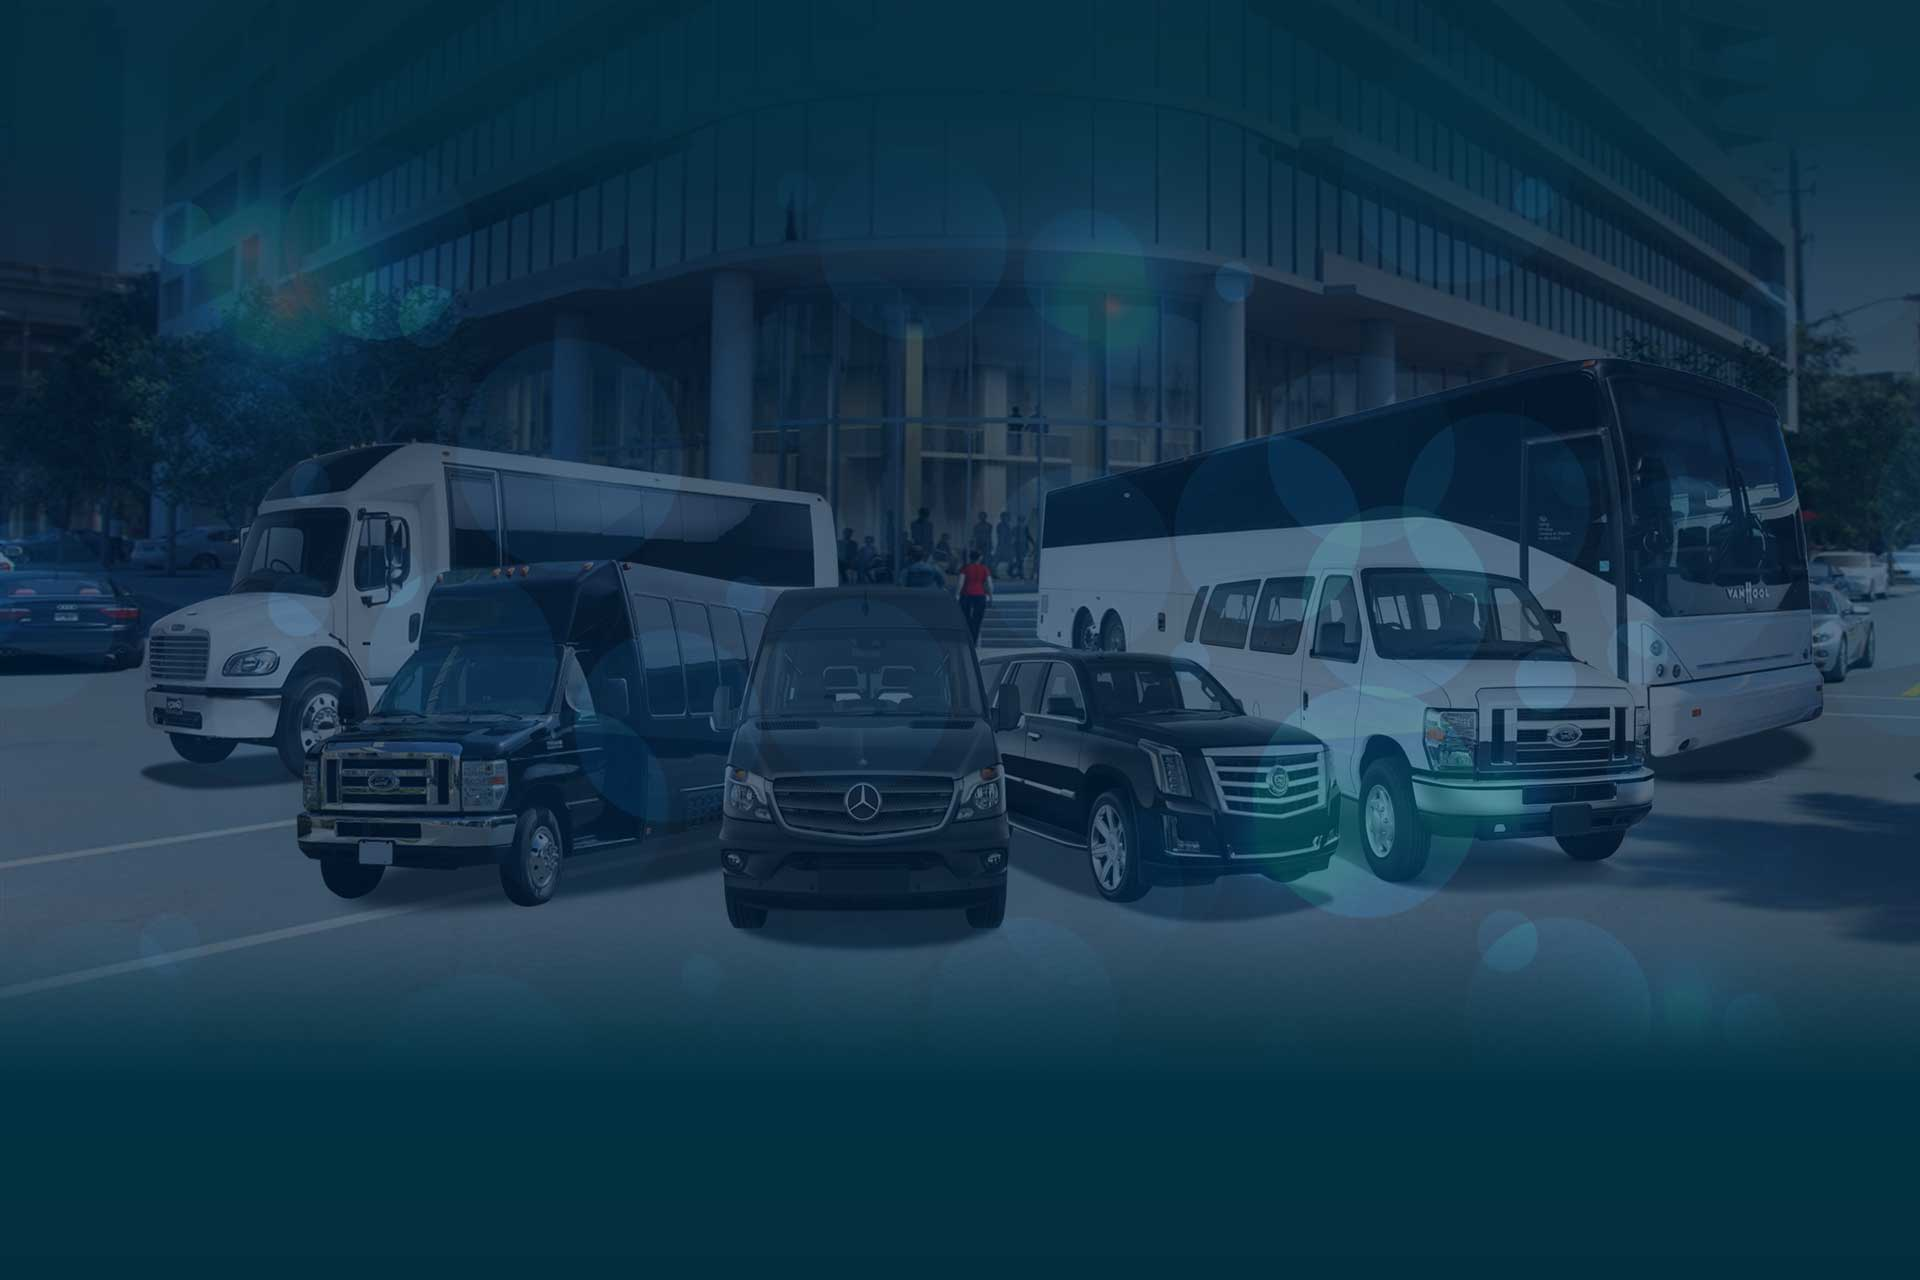 Black Tie XL Limousines | Buses Pro | Airport & Port Transportation | Charters, Transfers, Shuttle | Miami, West Palm Beach, Ft. Lauderdale, Hollywood, Key West, Orlando, Tampa